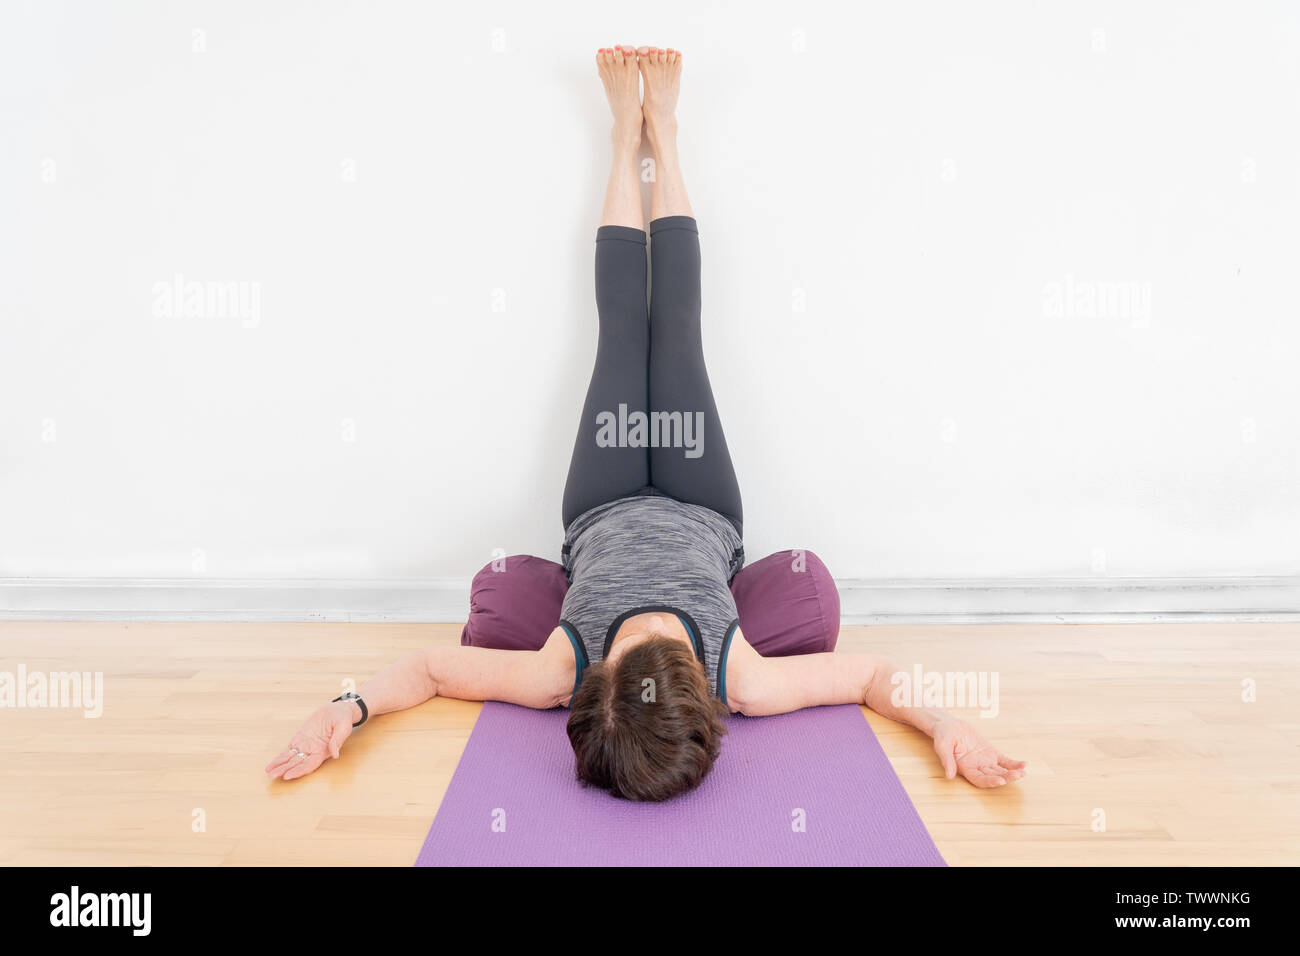 a 47 year old female yoga instructor uses bolsters in a